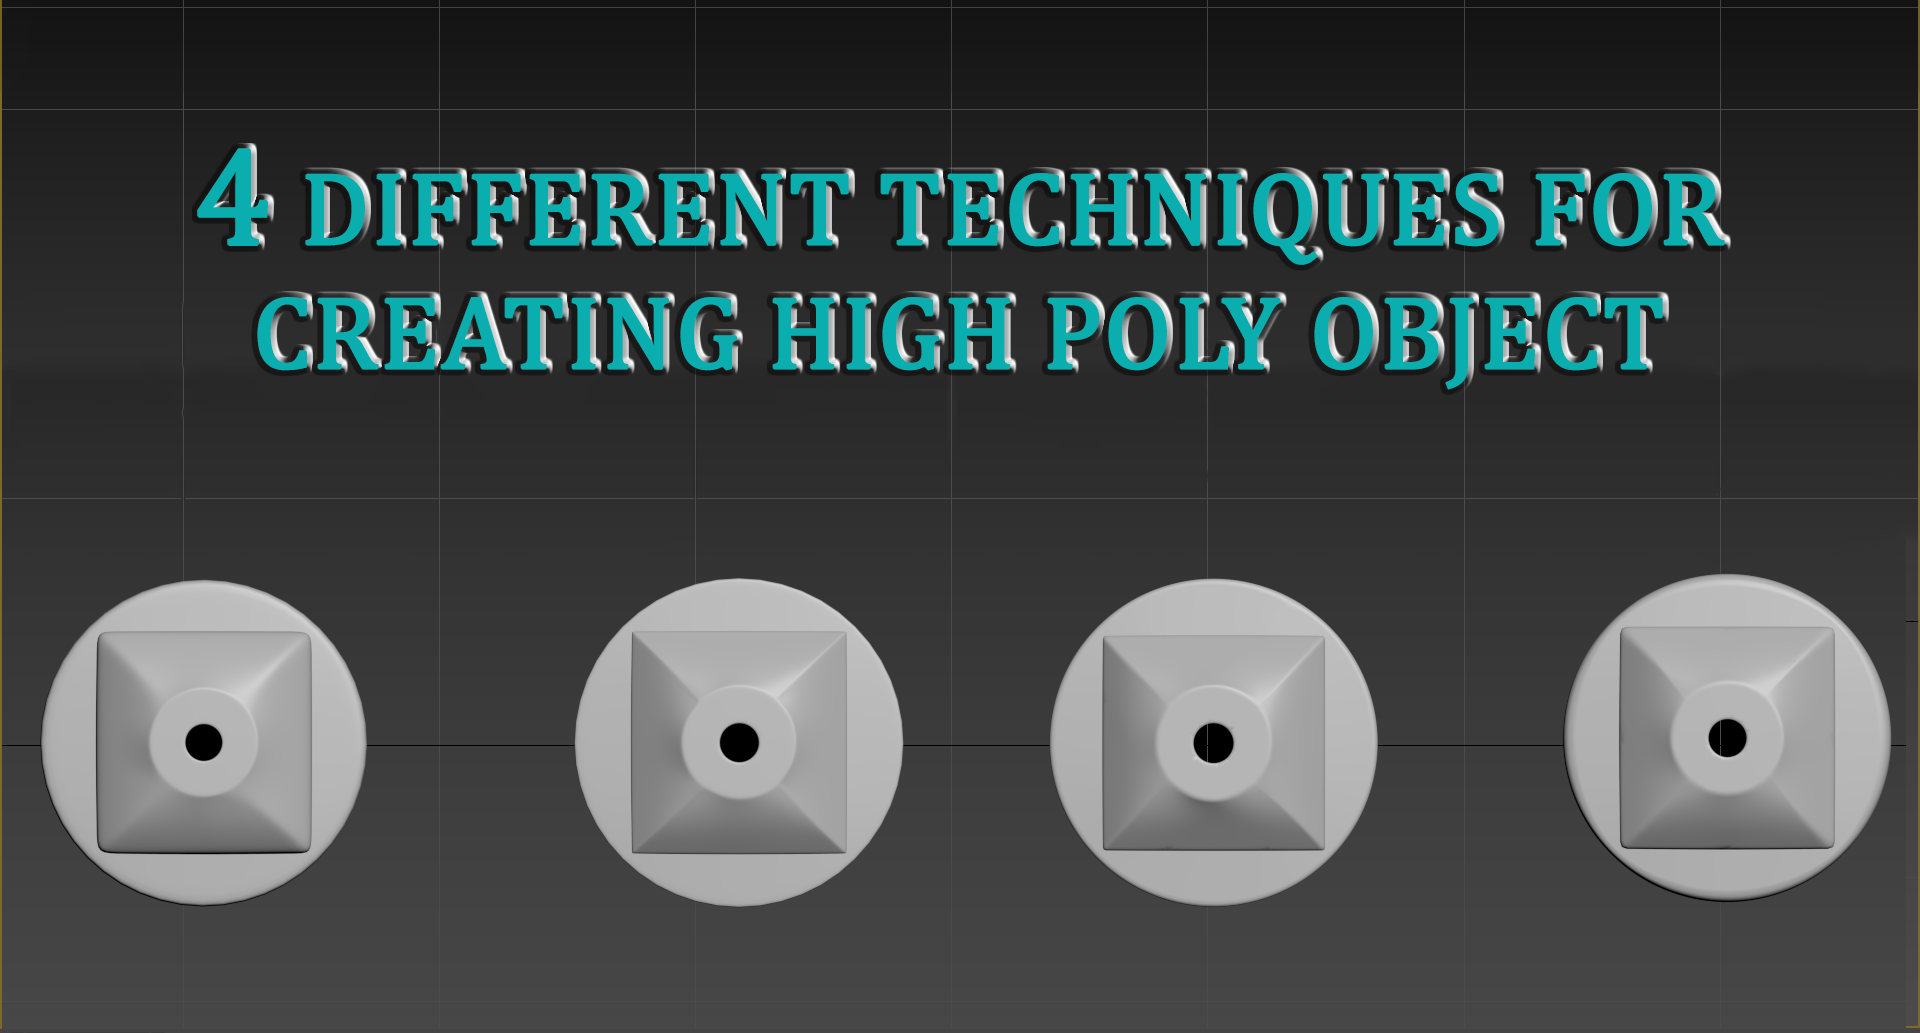 4 DIFFERENT TECHNIQUES FOR CREATING HIGH POLY OBJECT